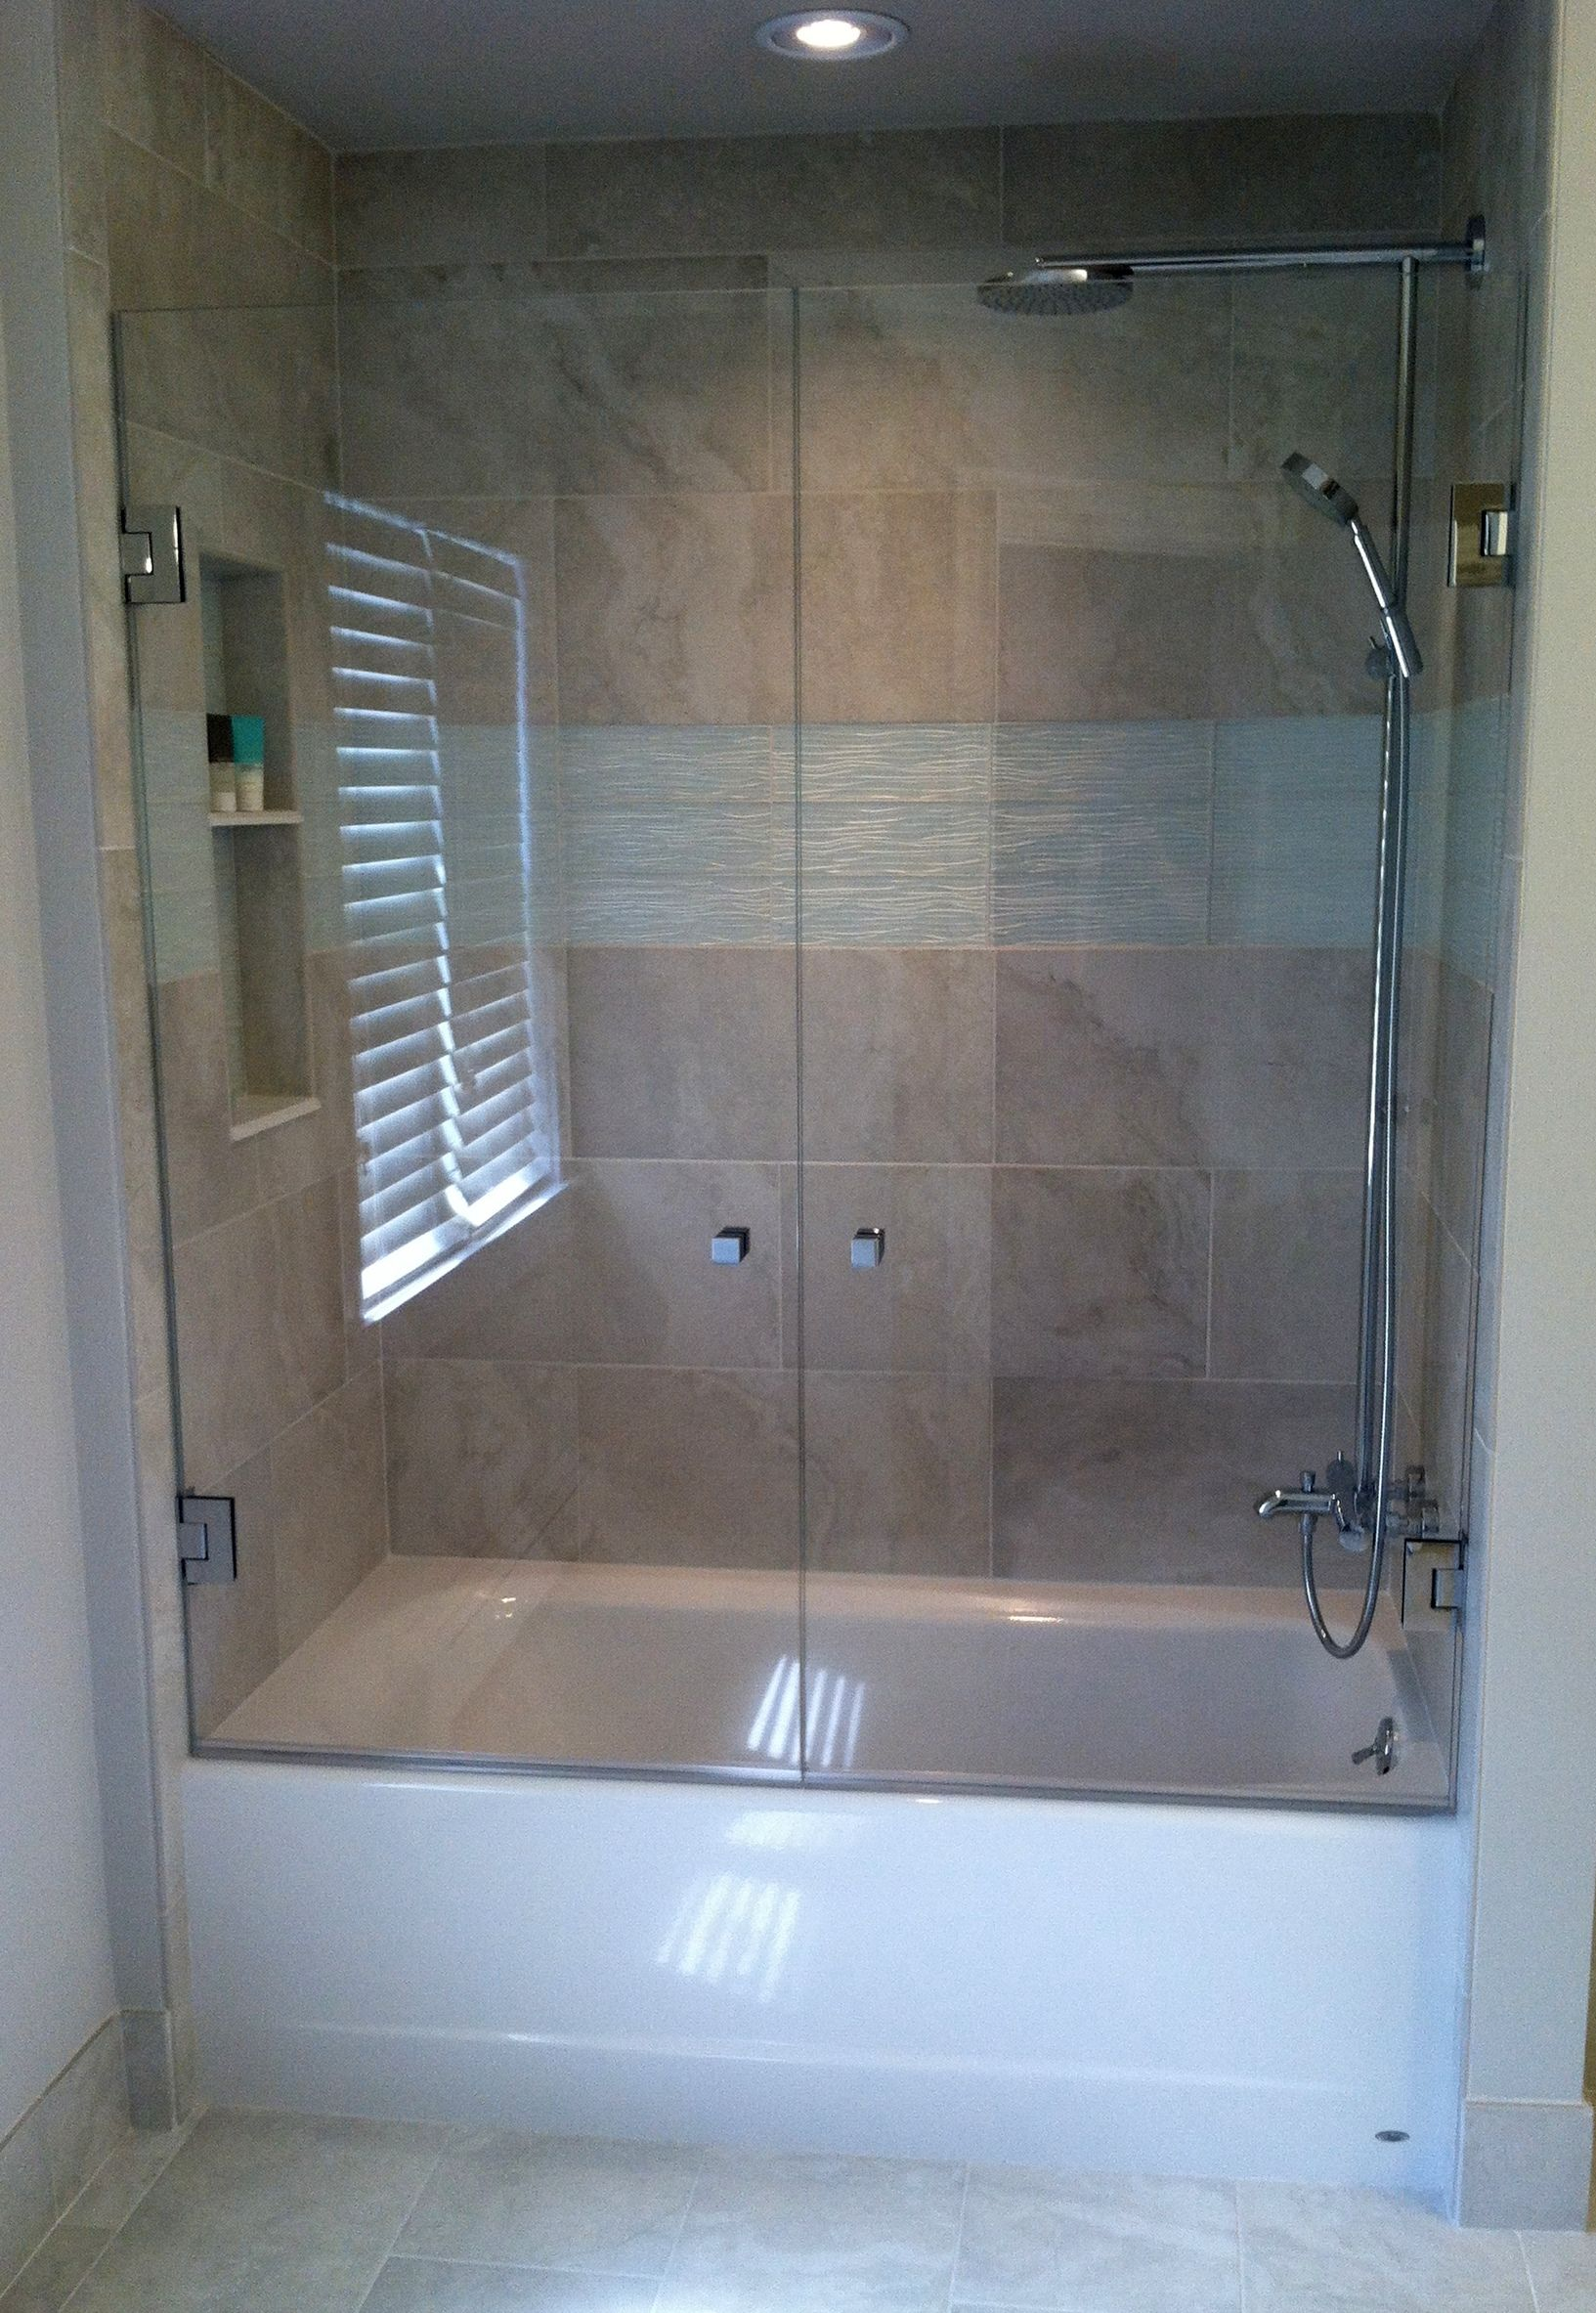 Glass doors for a bath - the right choice